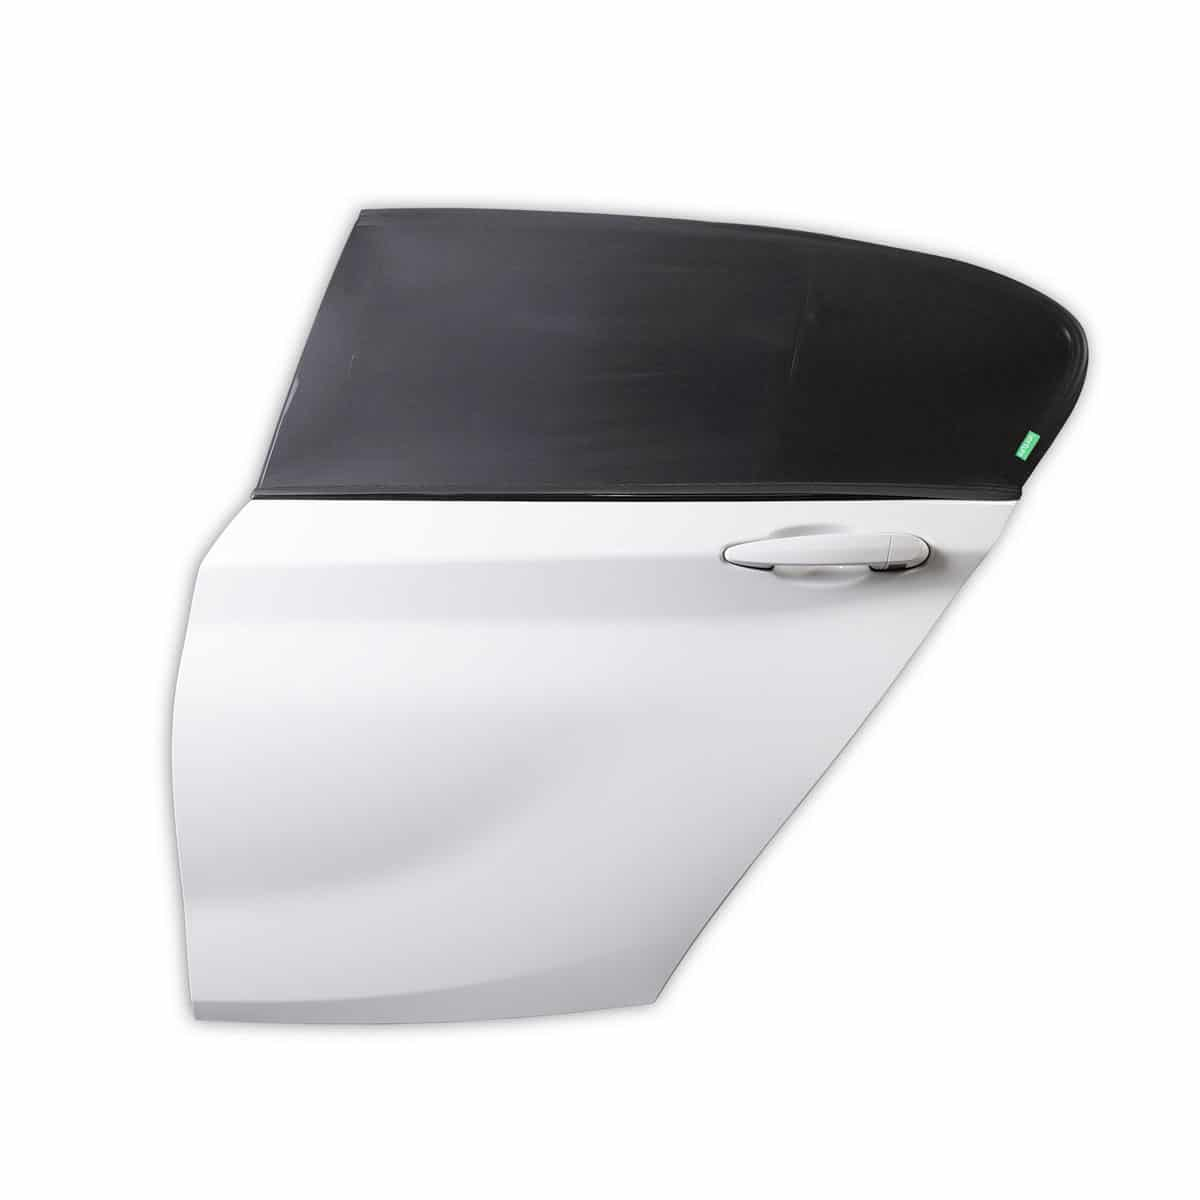 Universal fitting make this sun shade perfect for most cars